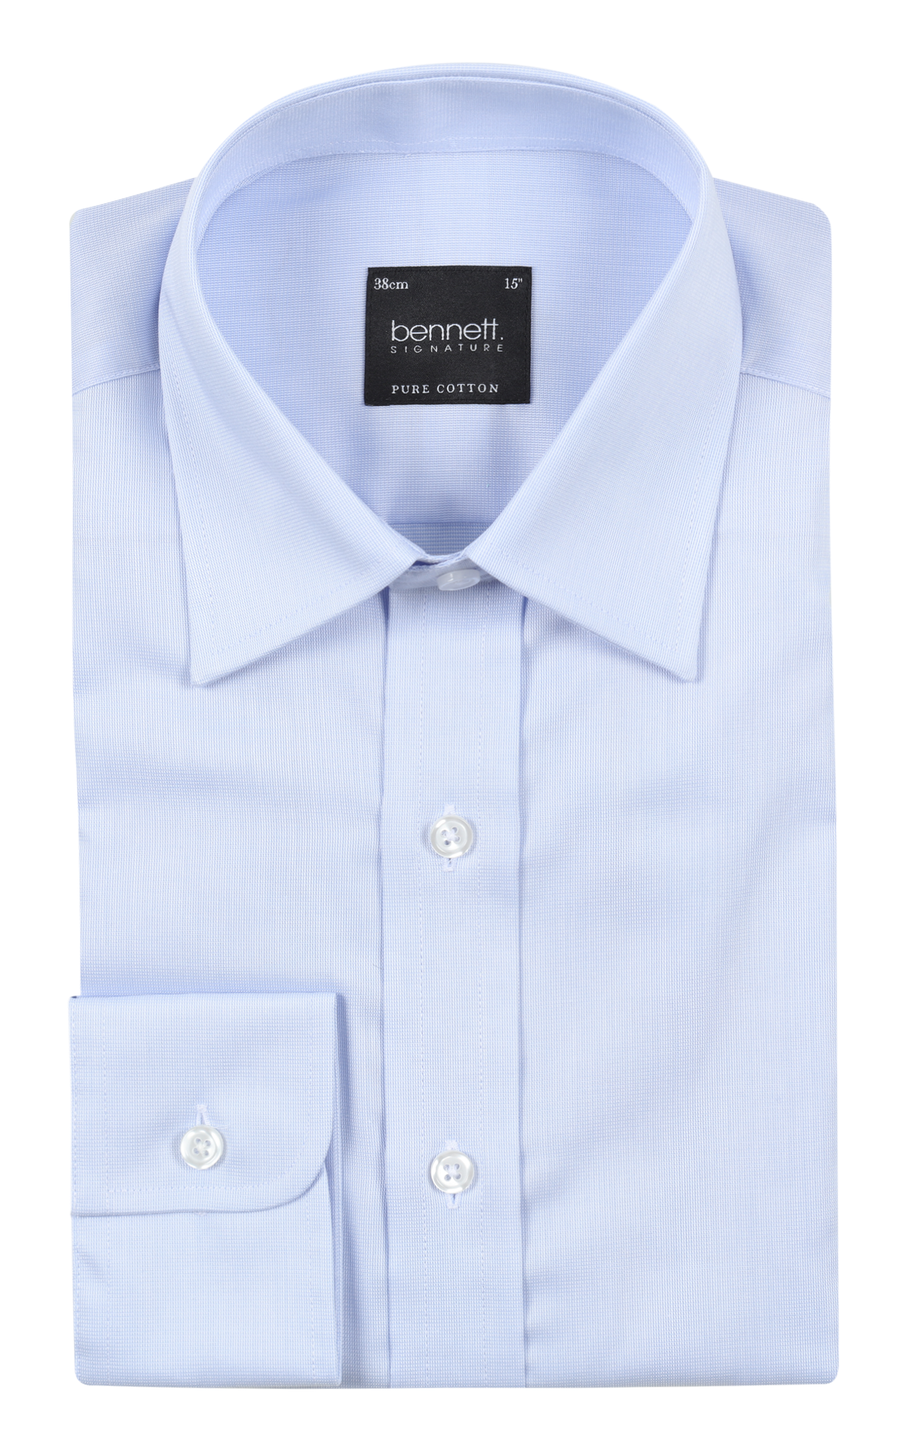 Bennett Signature Business Shirt in Blue - Ron Bennett Menswear